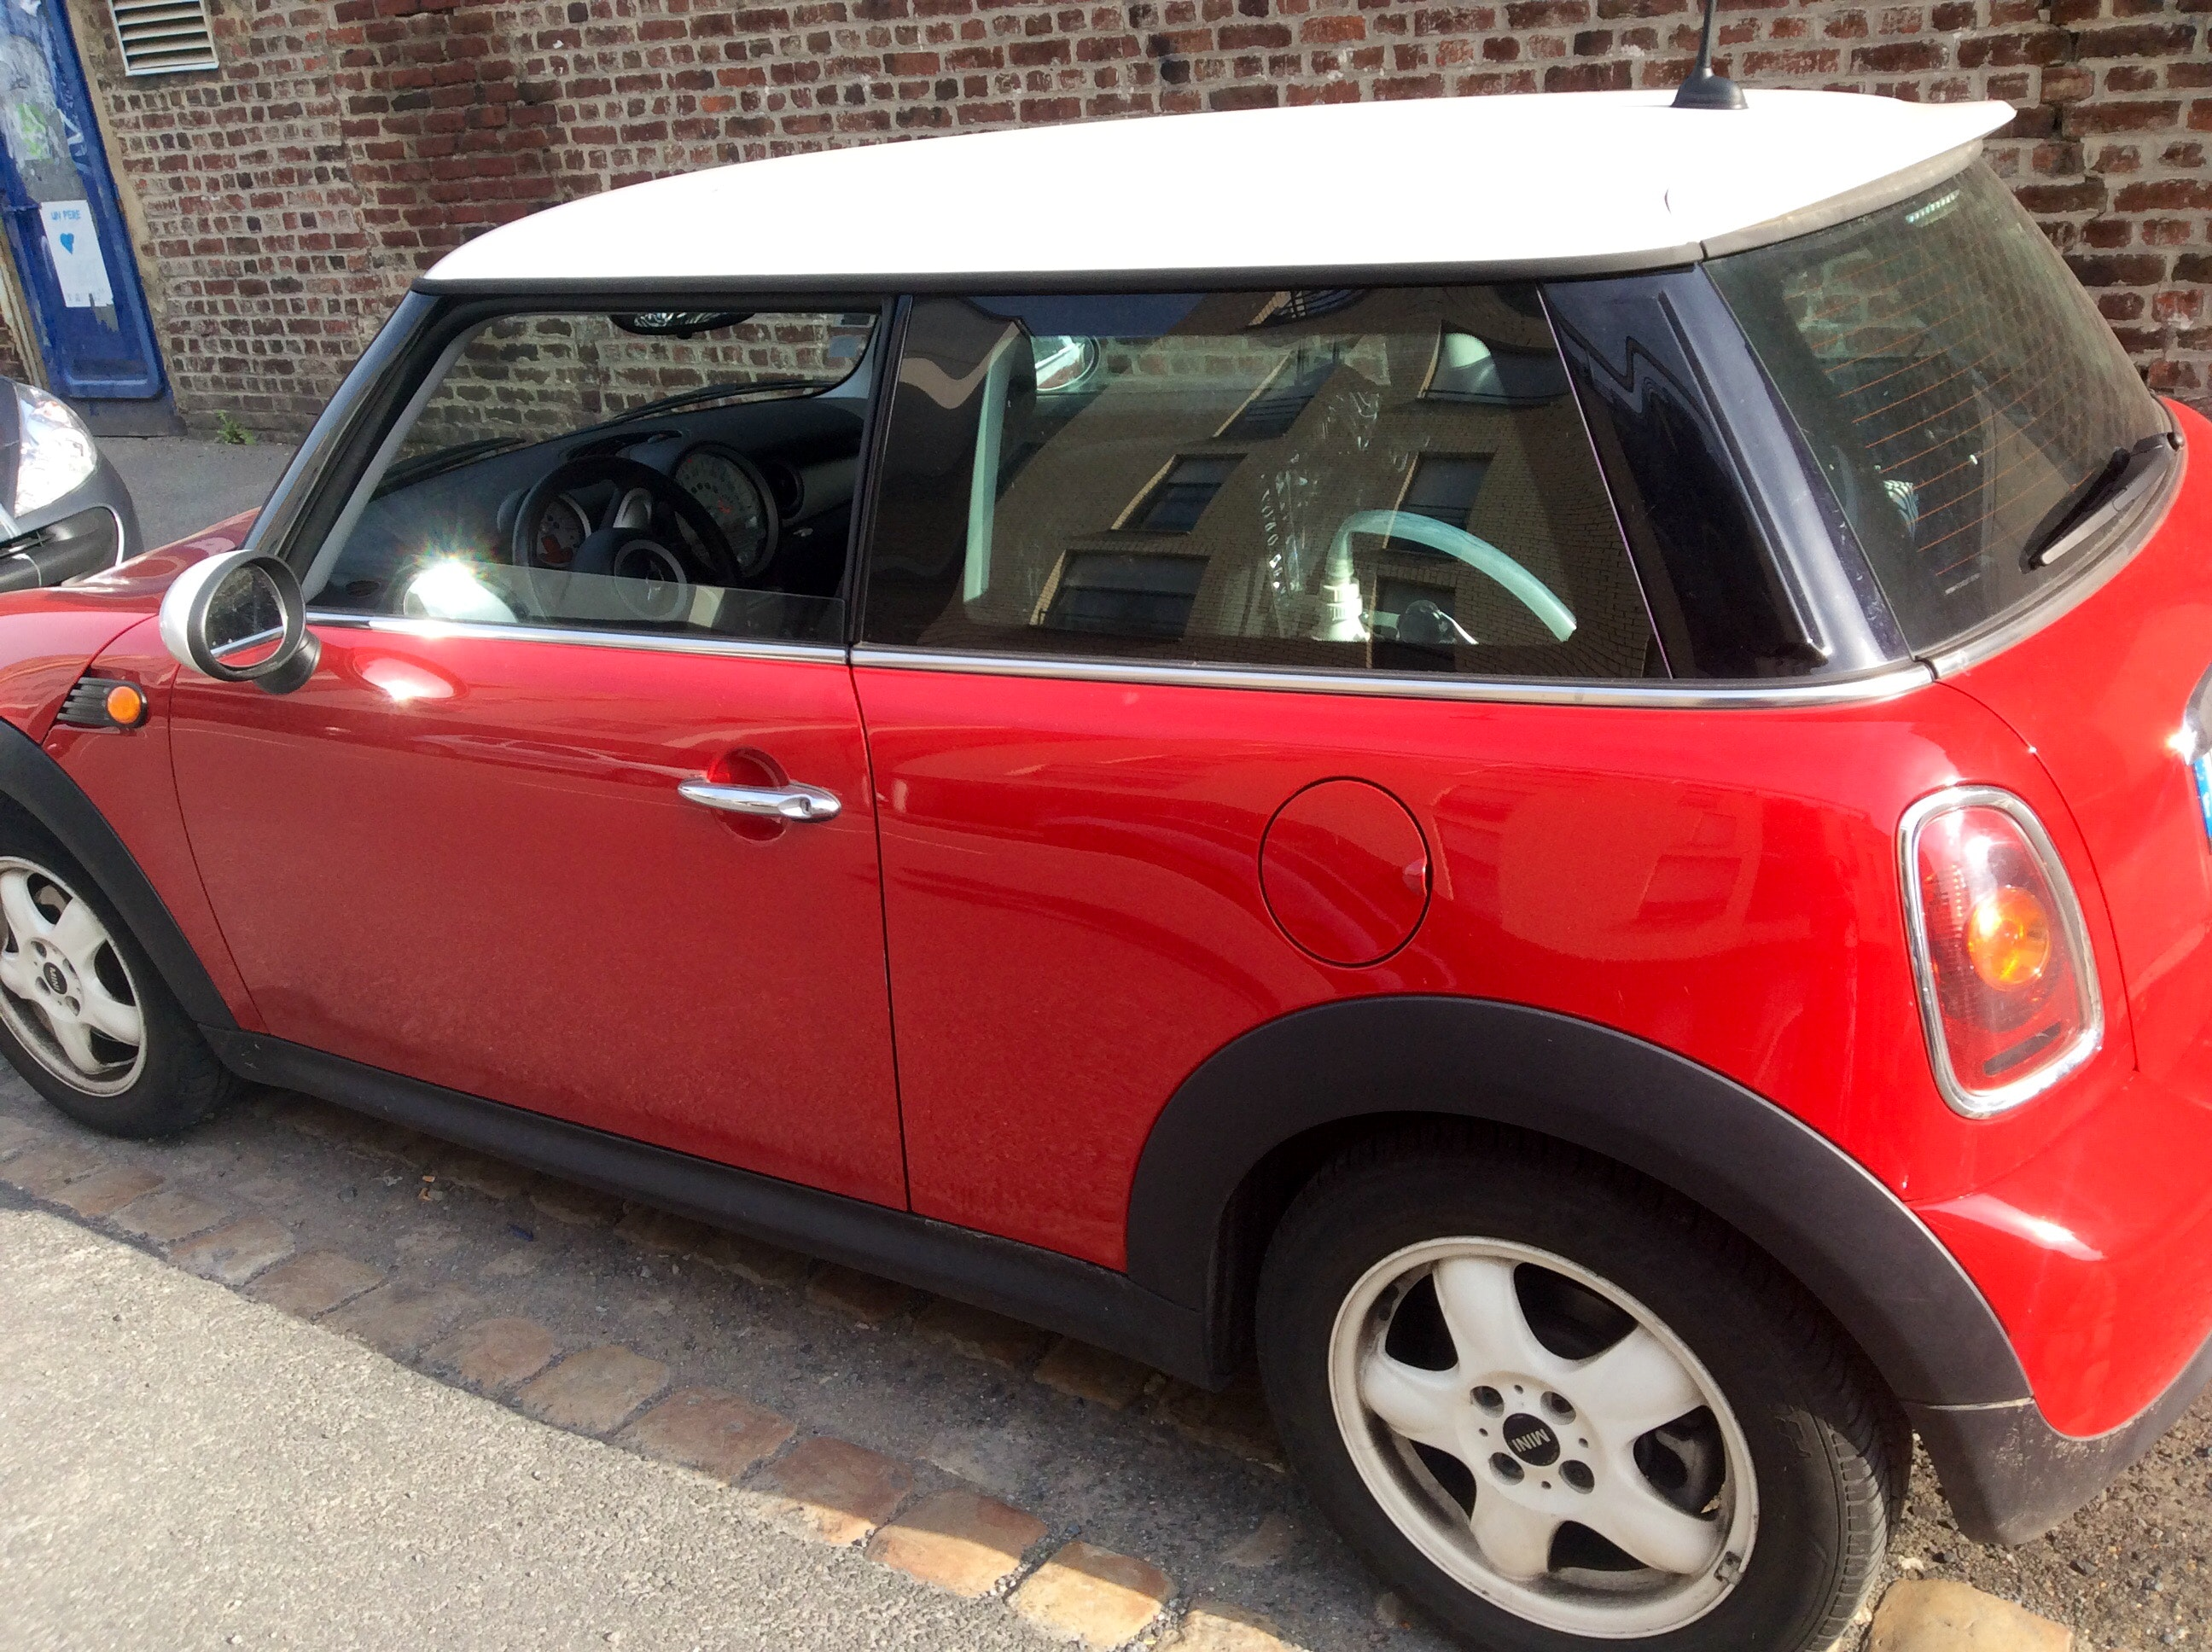 Mini cooper, 2008, Essence - Mini-citadine Arras (62)